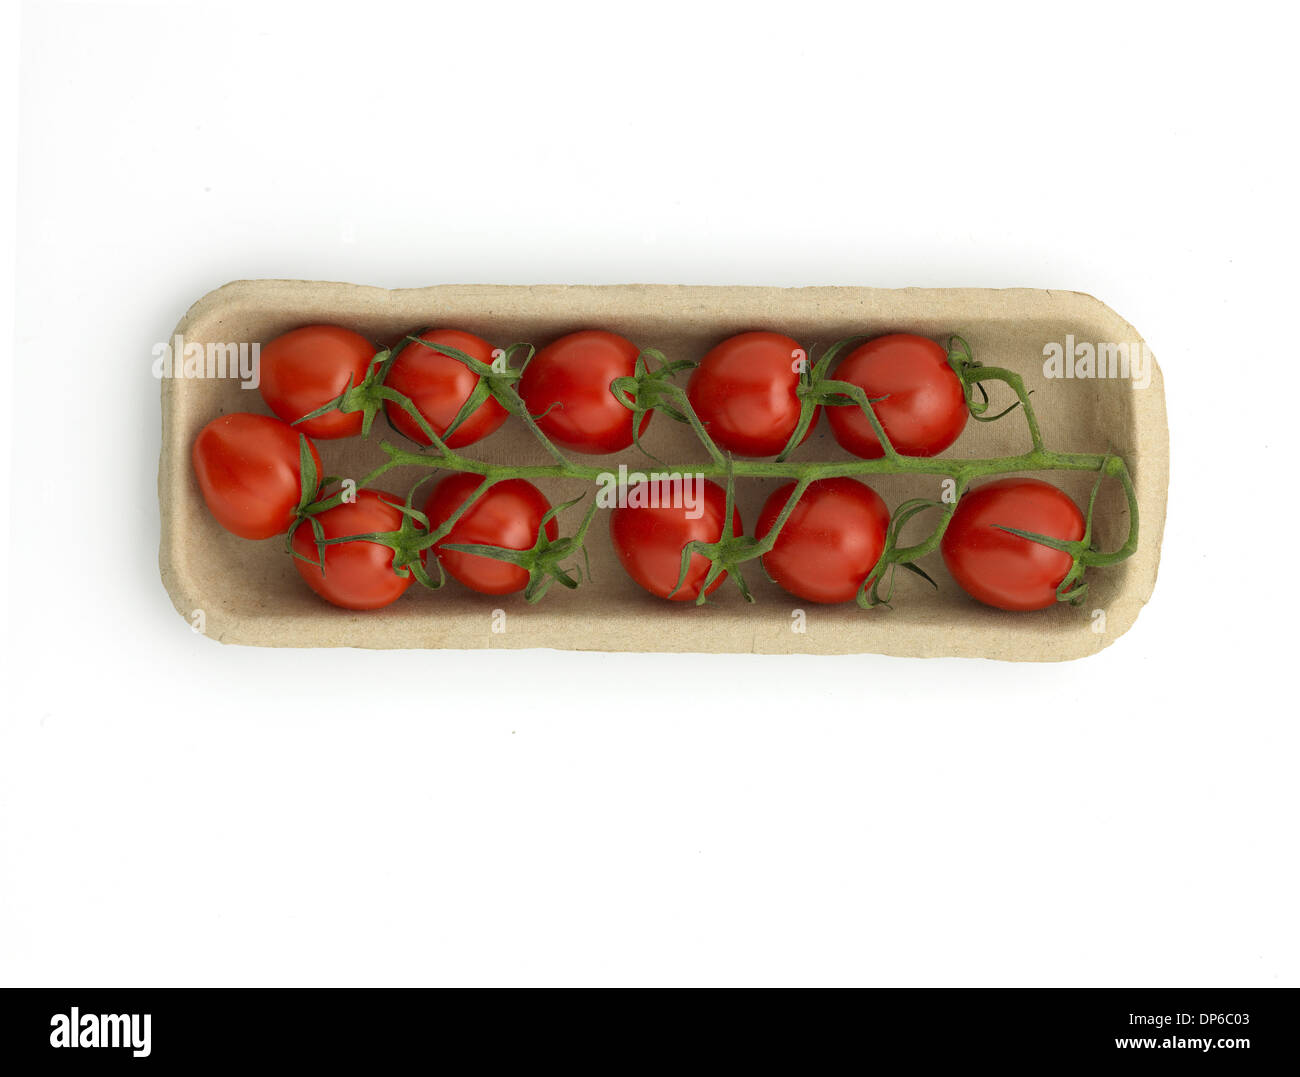 organic, vine tomatoes in recyclable tray - Stock Image